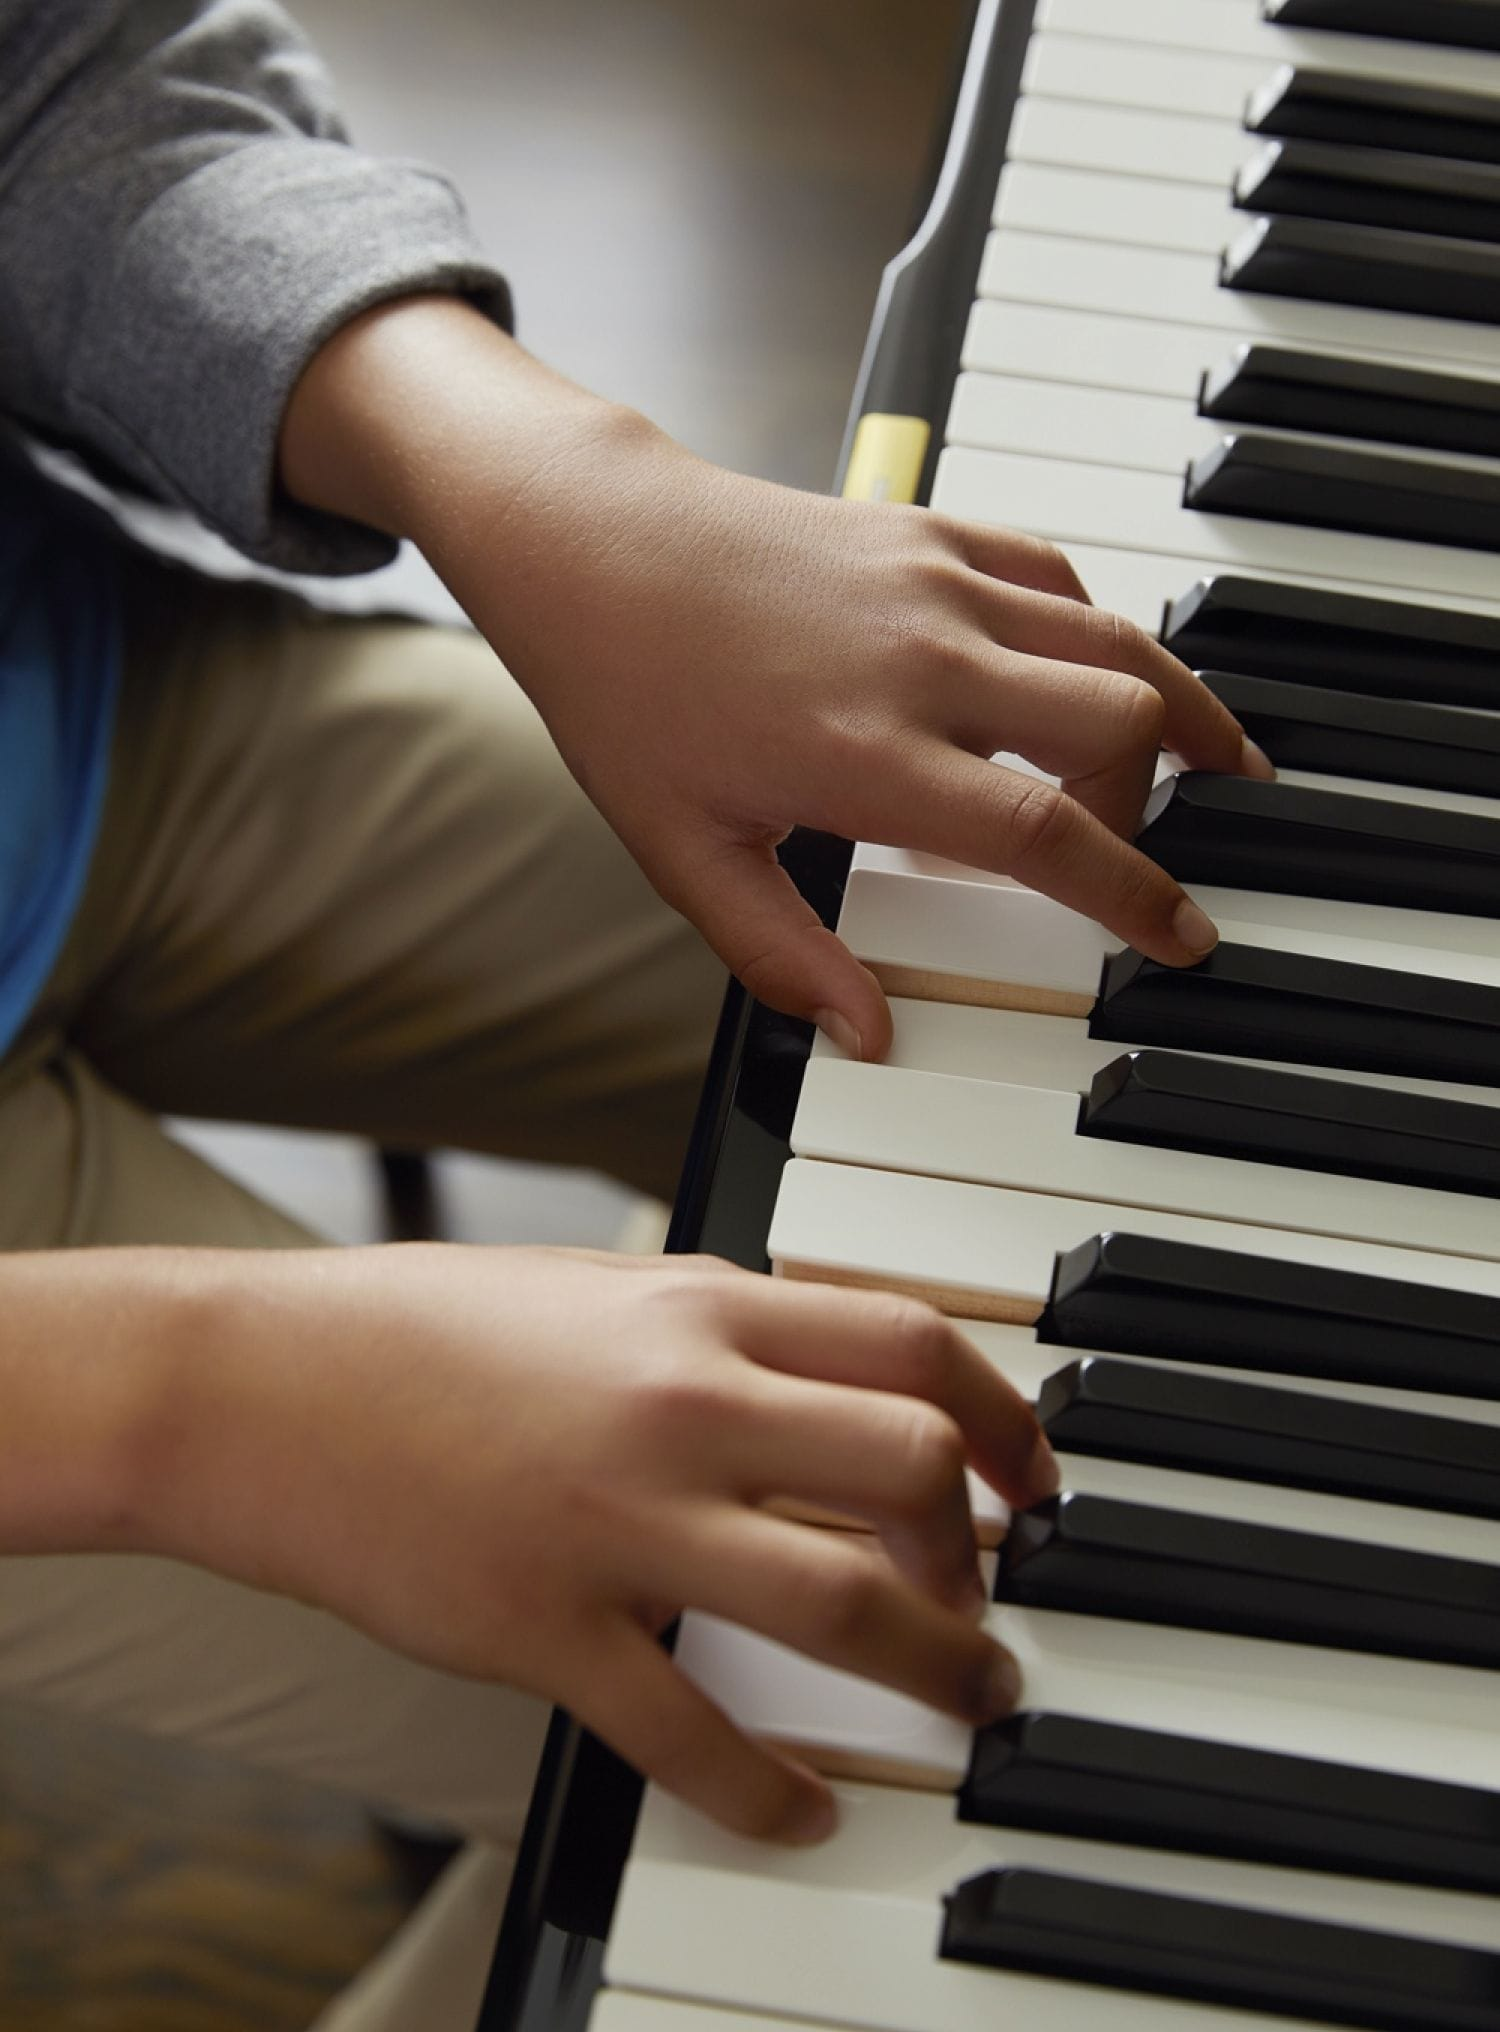 Young hands playing piano keys.